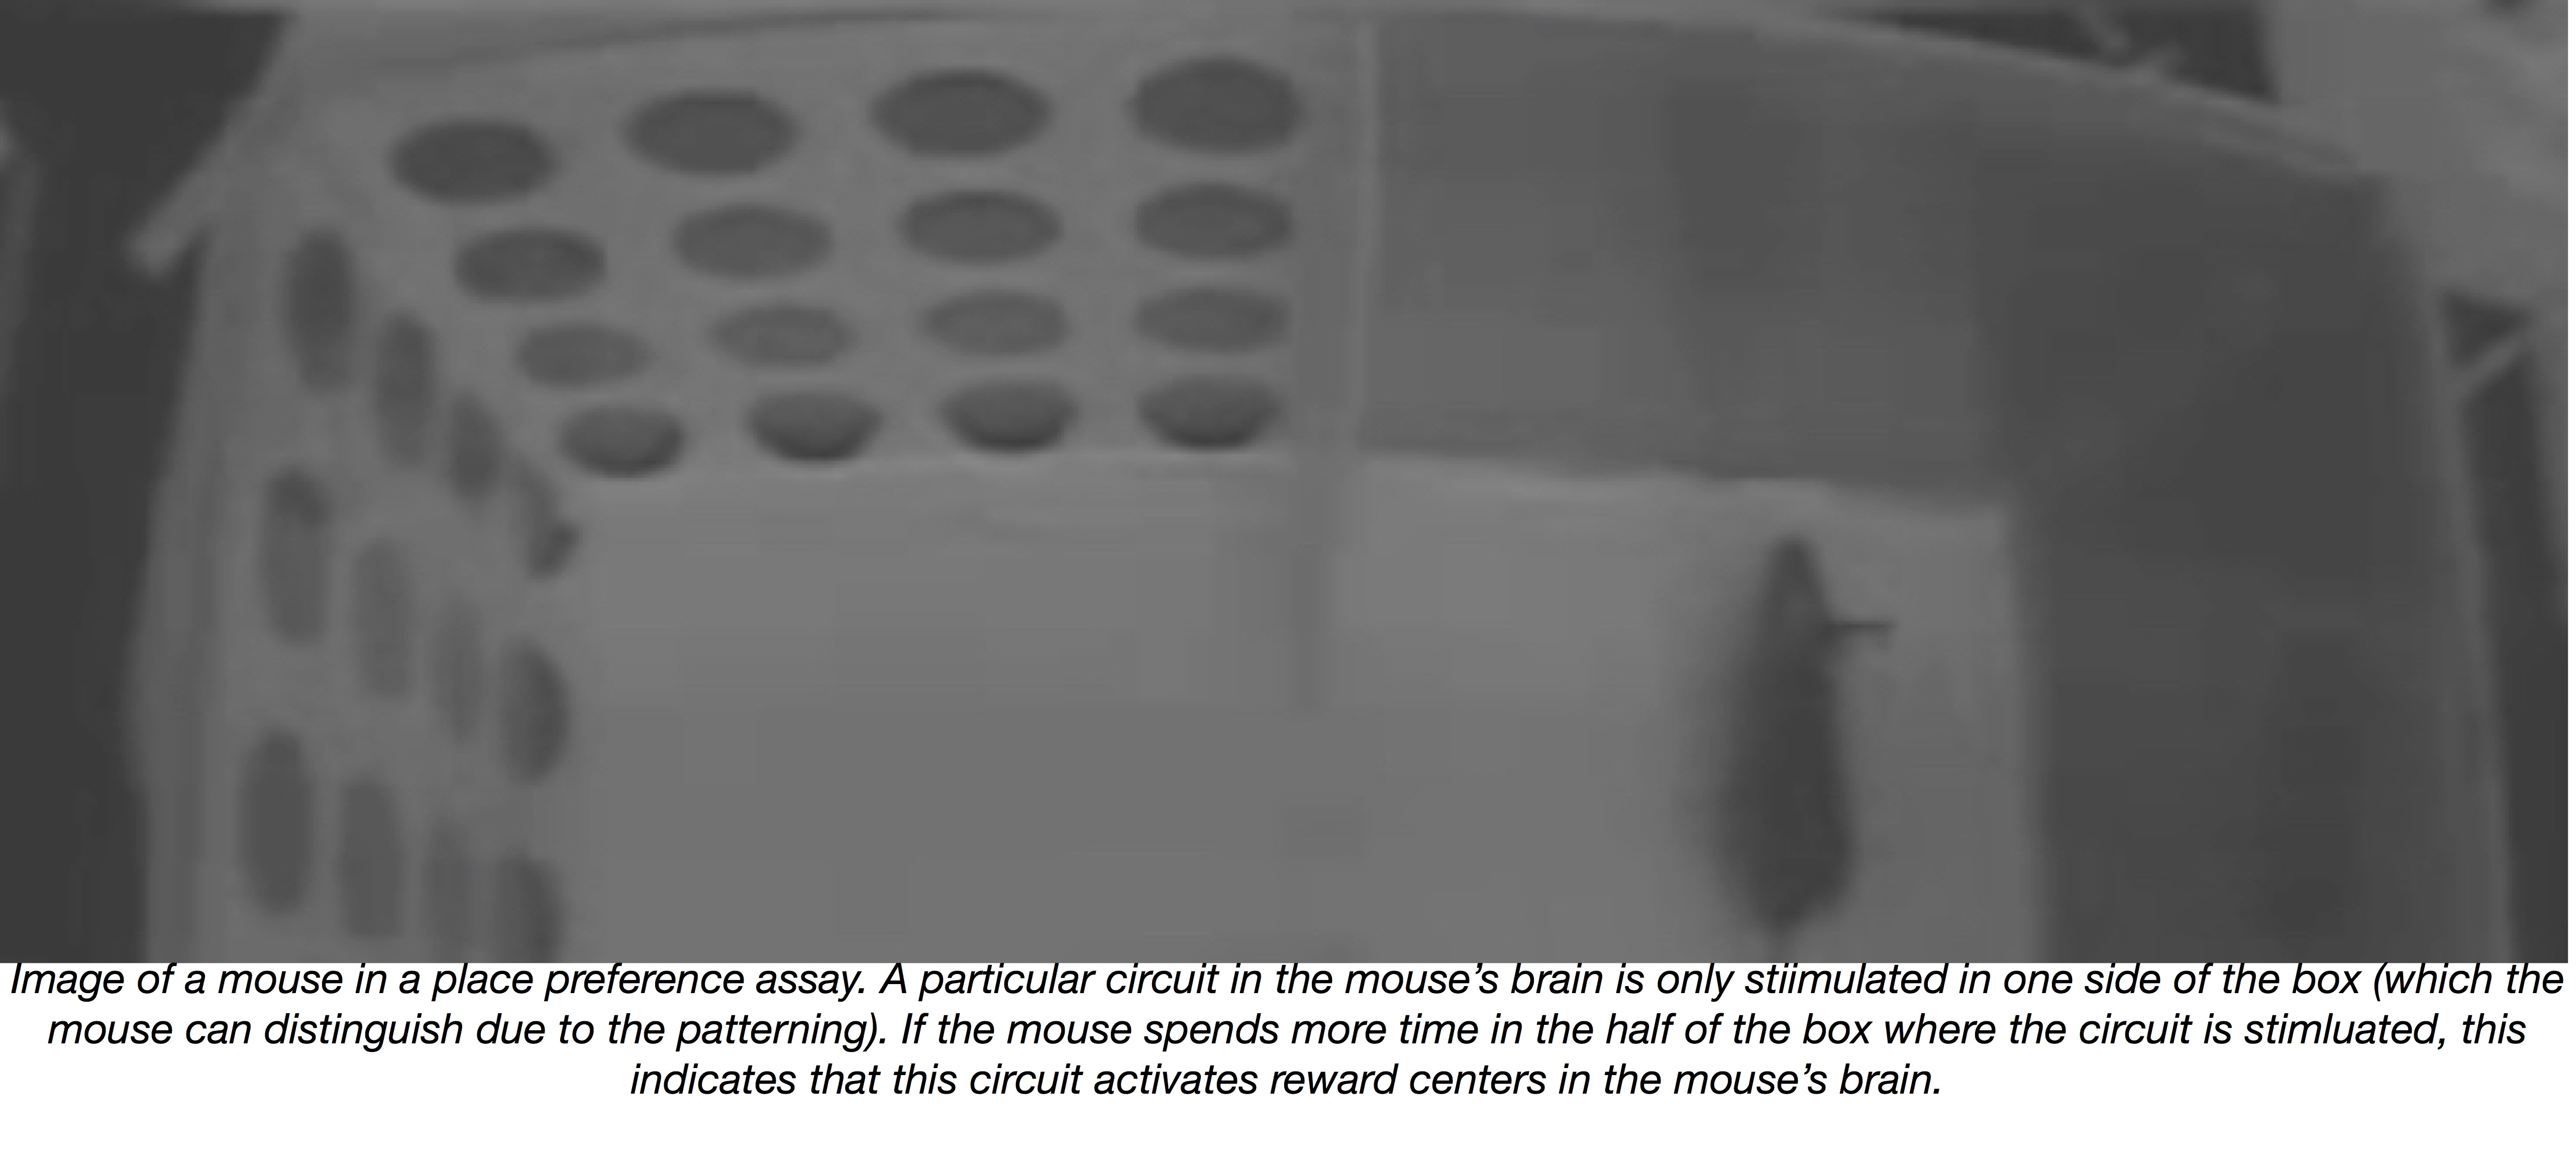 Mouse in place preference behavioral experiment